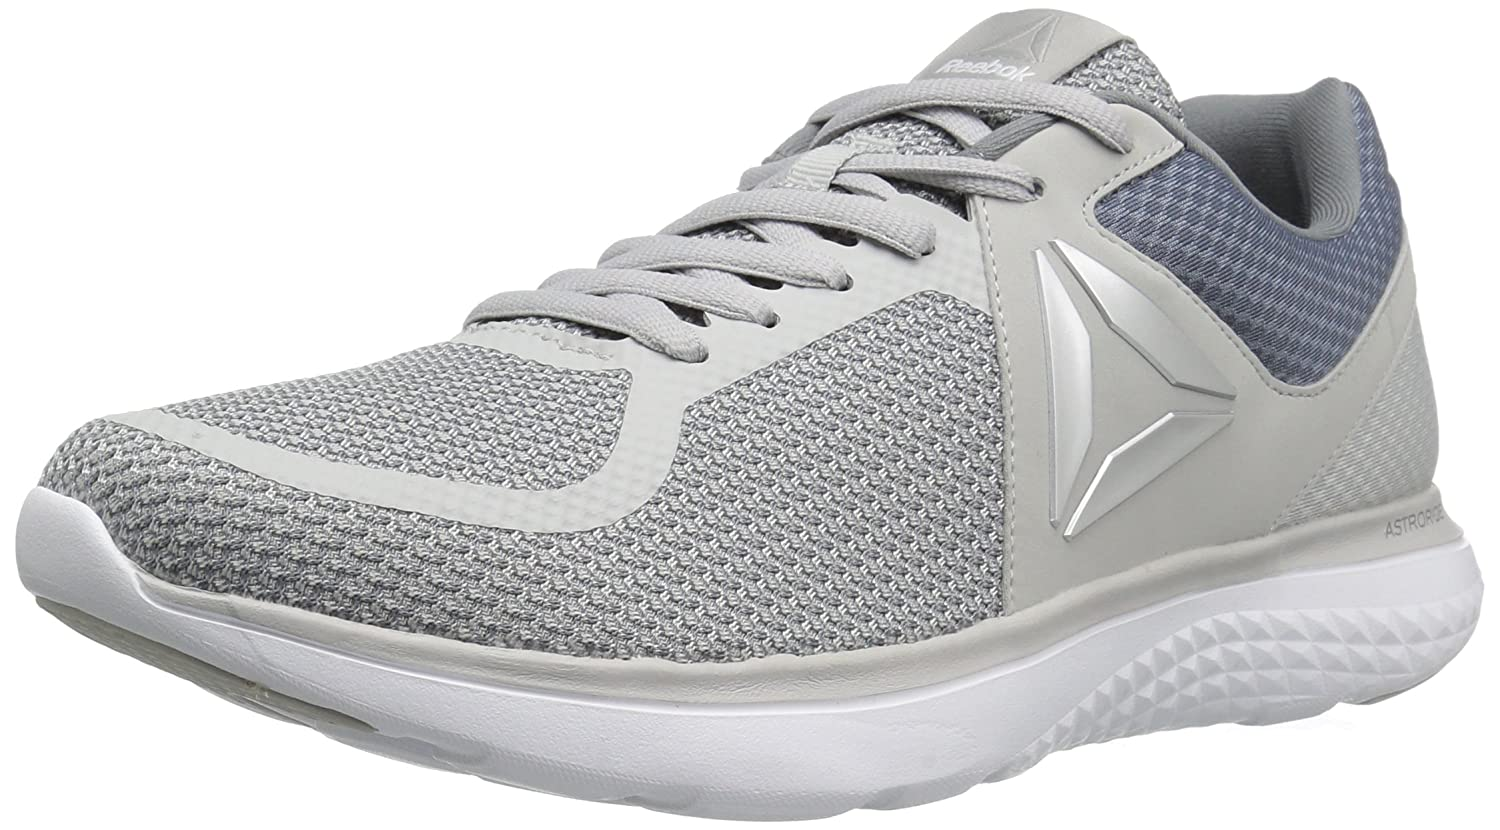 a0990caab71 Reebok Men s Astroride MT Running Shoe  Amazon.co.uk  Shoes   Bags